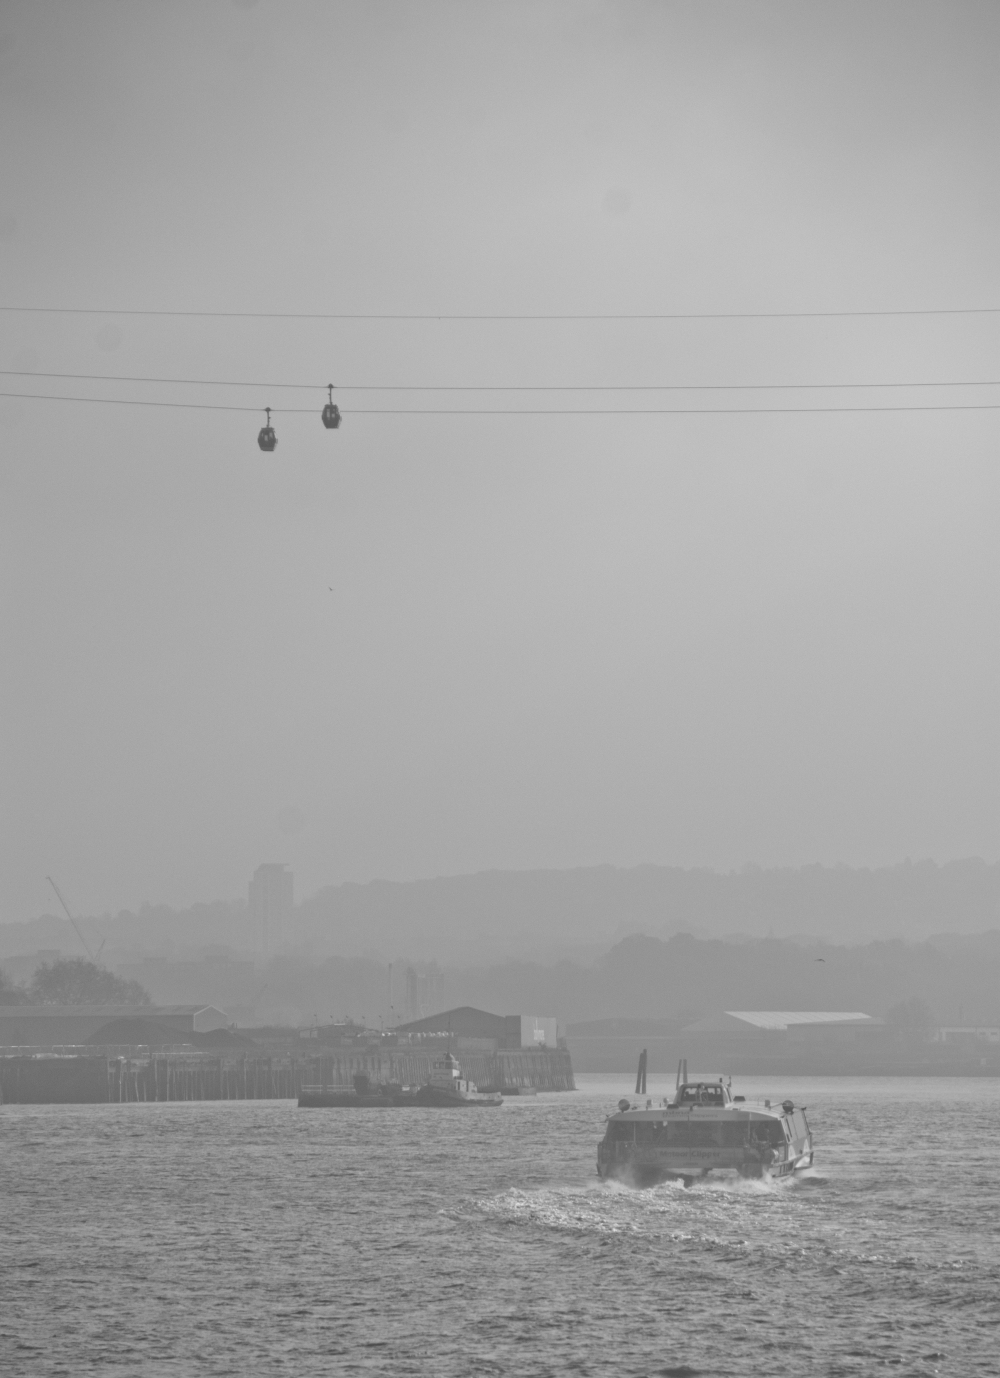 clipper and cable cars